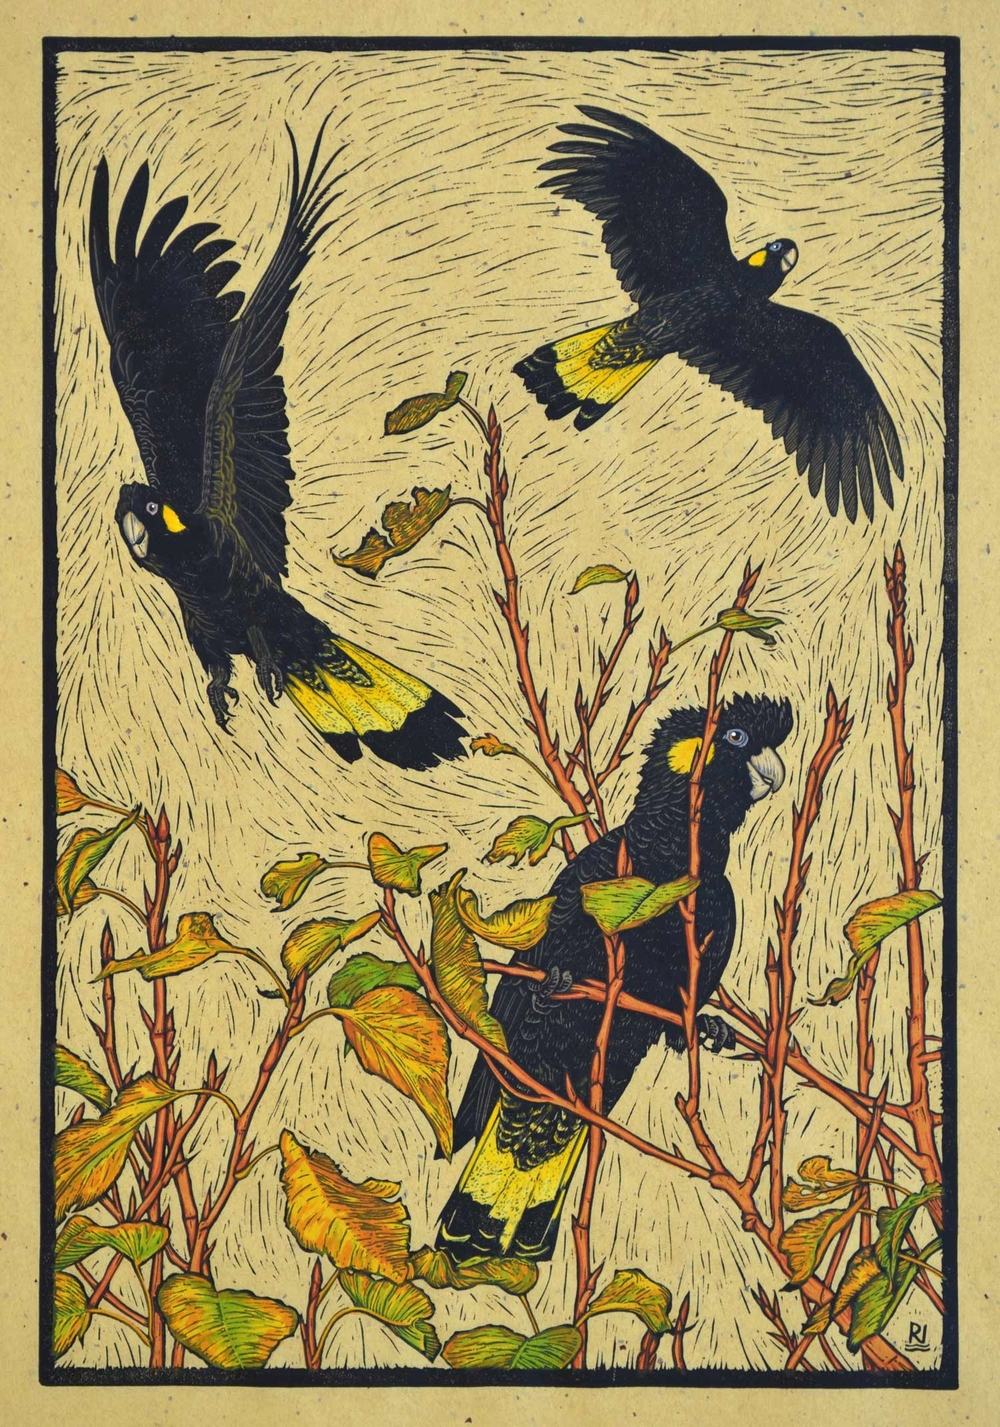 Three Yellow-tailed black Cockatoos (hand coloured version)  53.5 x 36.5 cm    edition of 50  Hand coloured linocut on handmade Japanese paper  $1,100